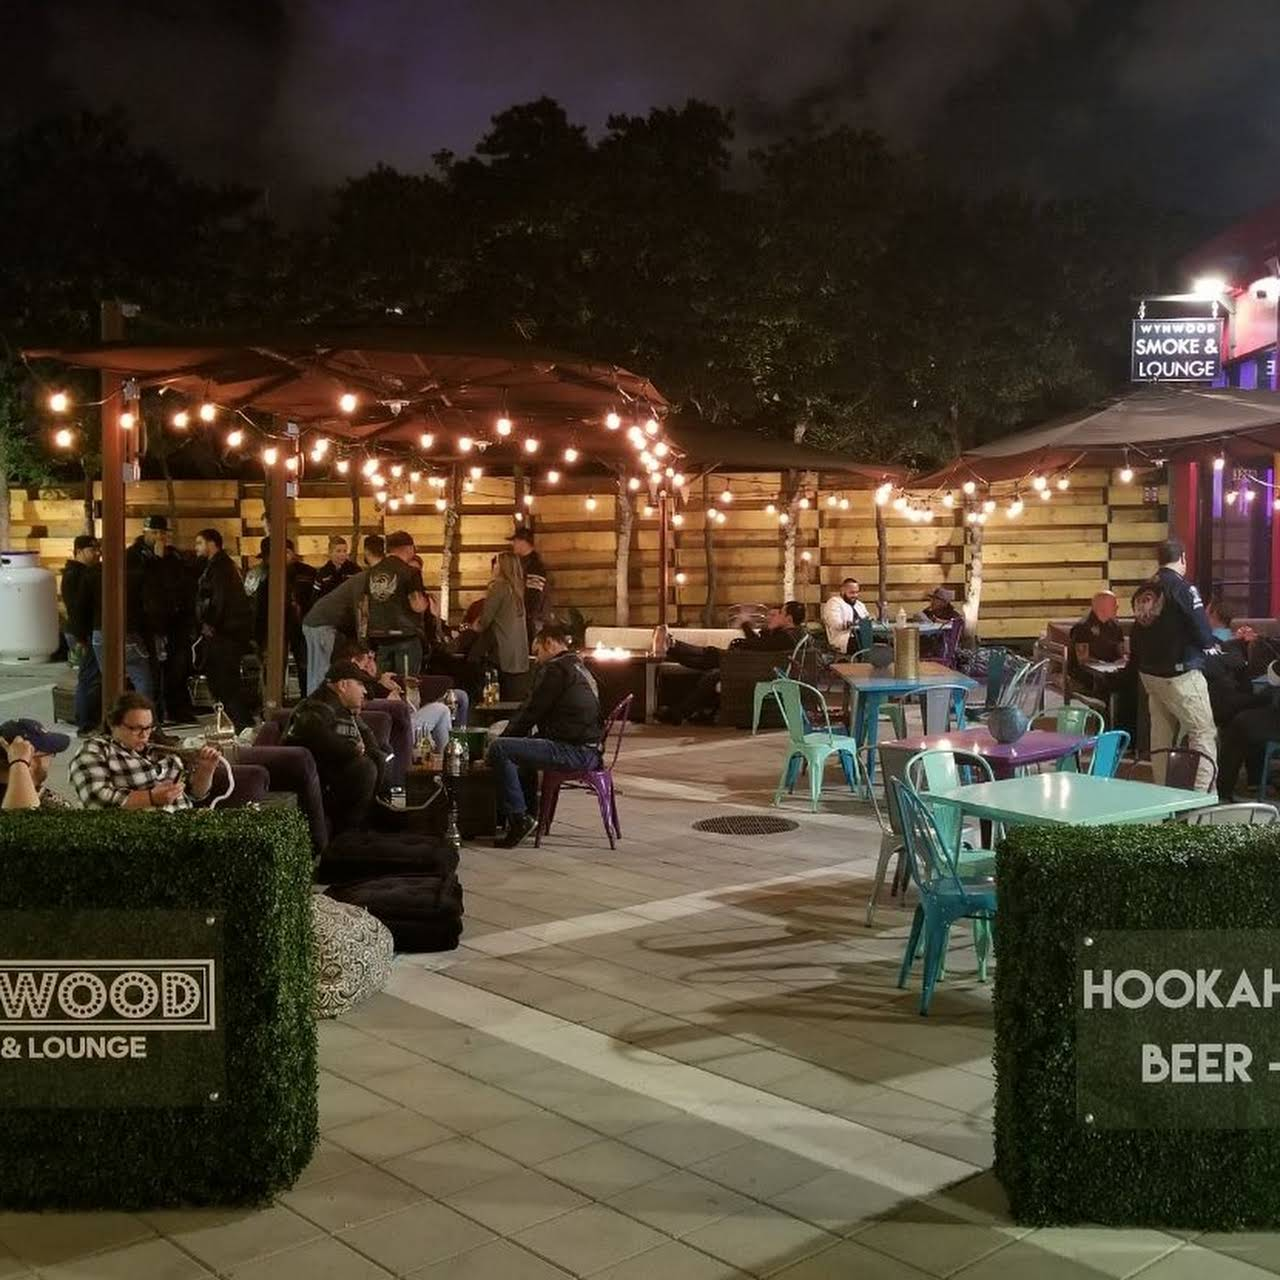 Wynwood Smoke And Lounge Hookah Bar And Lounge In The